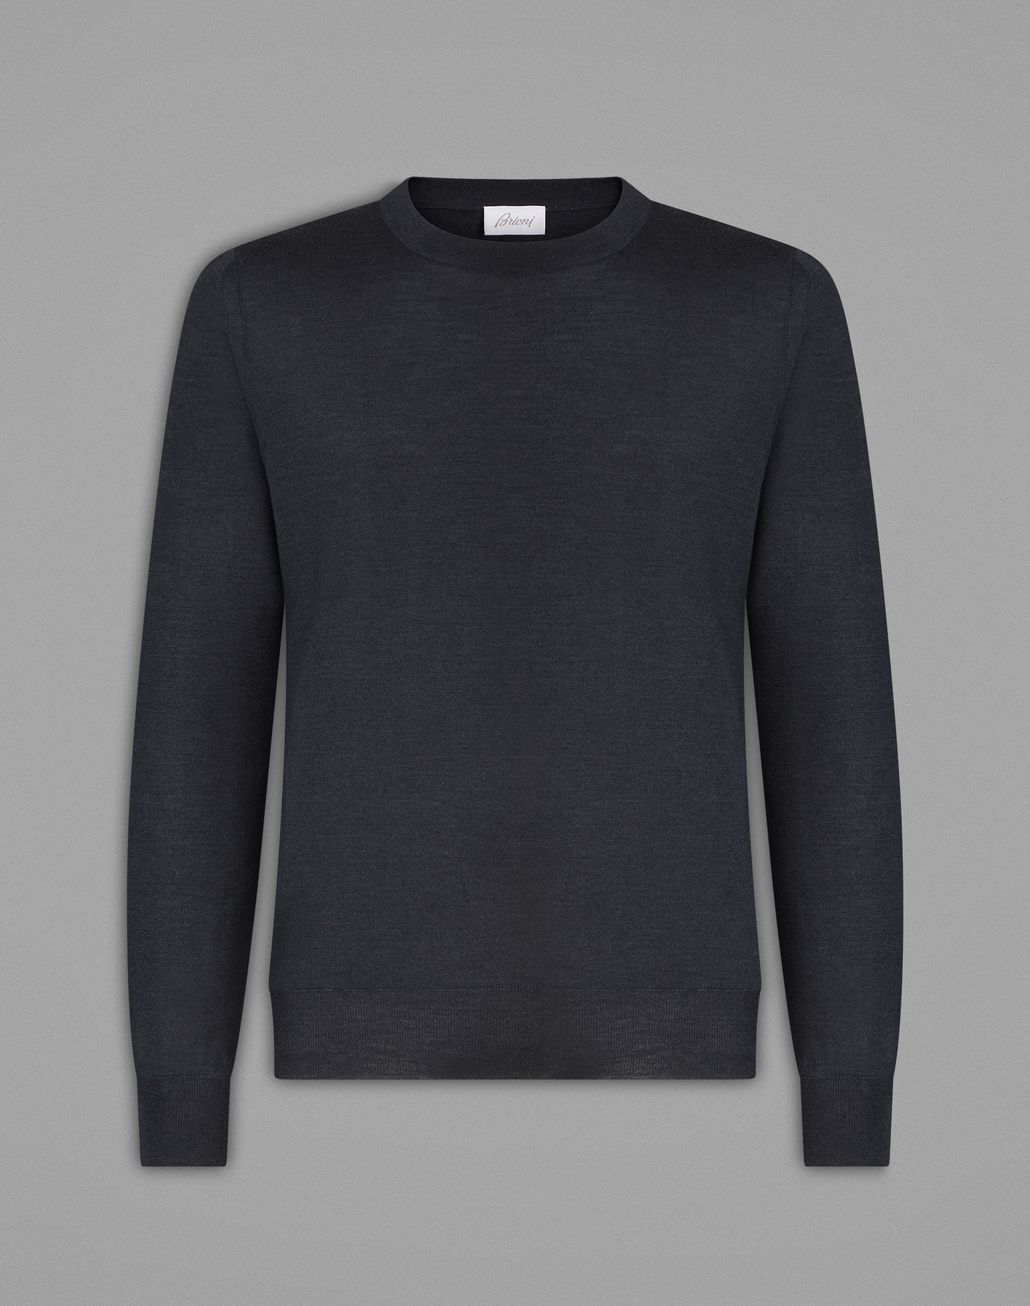 BRIONI Essential' Gray Crew-Neck Sweater Knitwear Man f